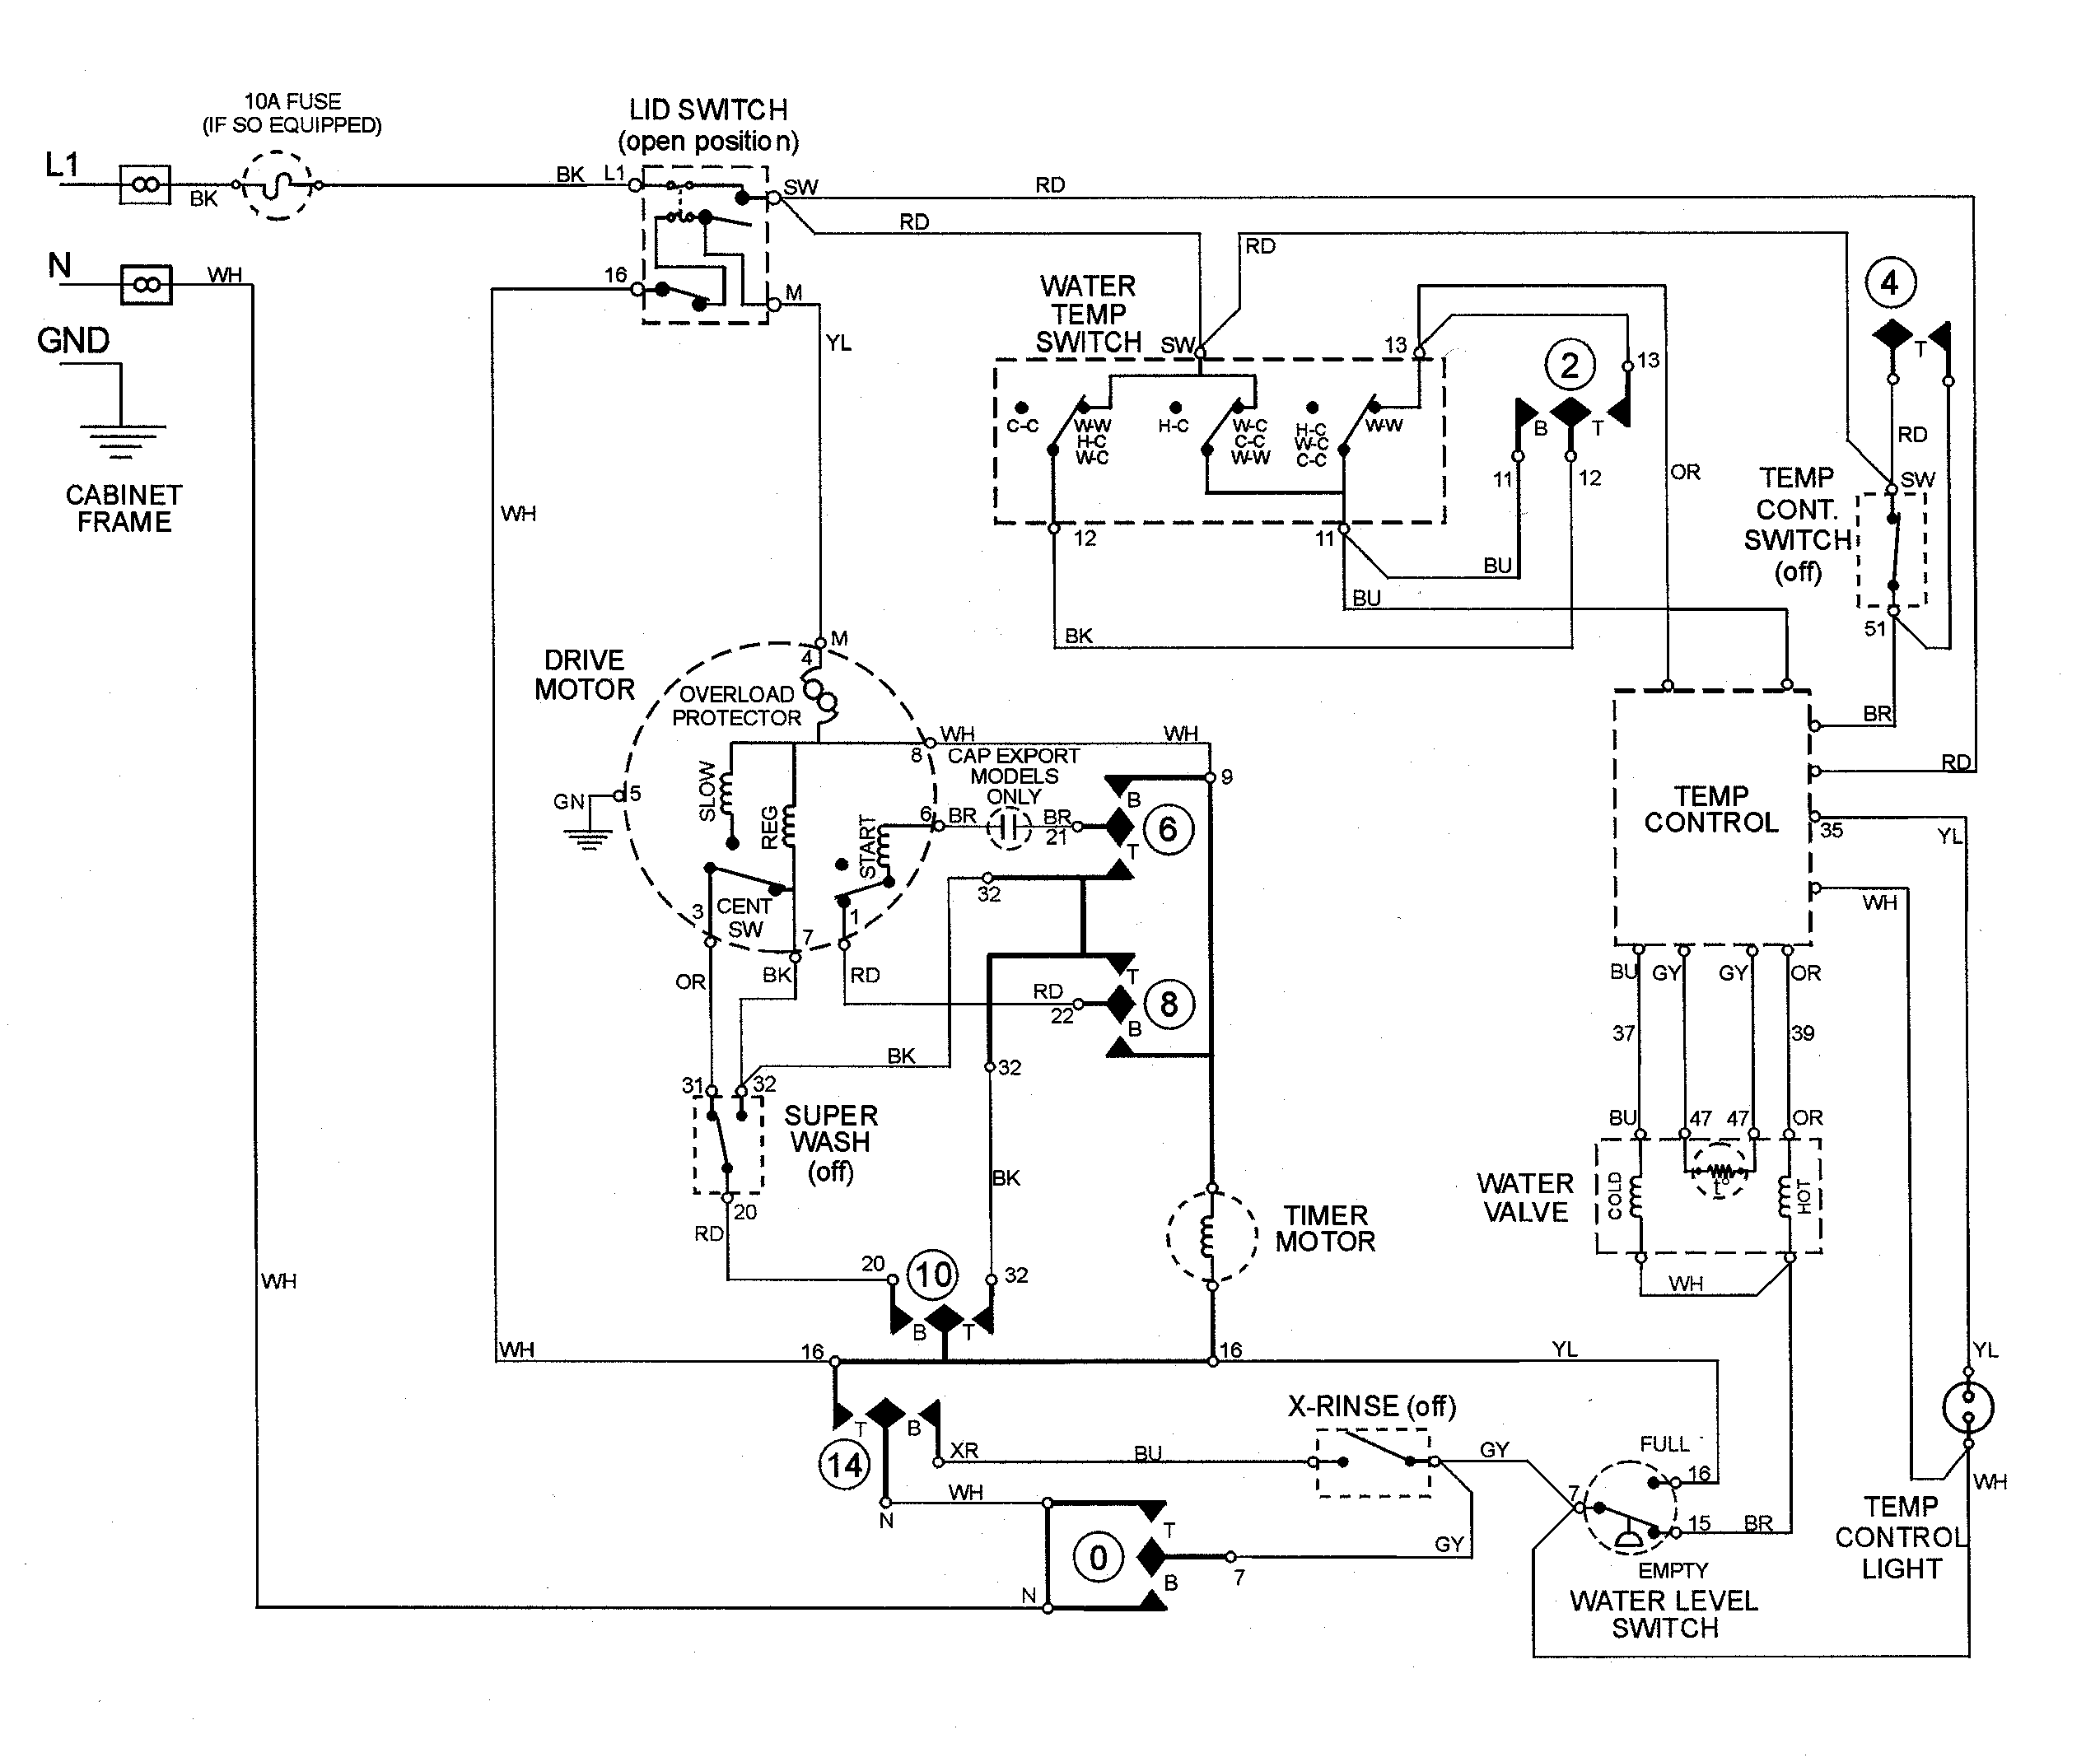 EBADB Maruti Suzuki Wagon R Wiring Diagram | Digital Resources on car schematics, chevy truck diagrams, dodge ram vacuum diagrams, car motors diagrams, 7.3 ford diesel diagrams, custom stereo diagrams, car parts diagrams, factory car stereo diagrams, car electrical, car starting system, battery diagrams, autozone repair diagrams, car door lock diagram, car exhaust, club car manuals and diagrams, car vacuum diagrams, car battery, 3930 ford tractor parts diagrams, club car manual wire diagrams, pinout diagrams,